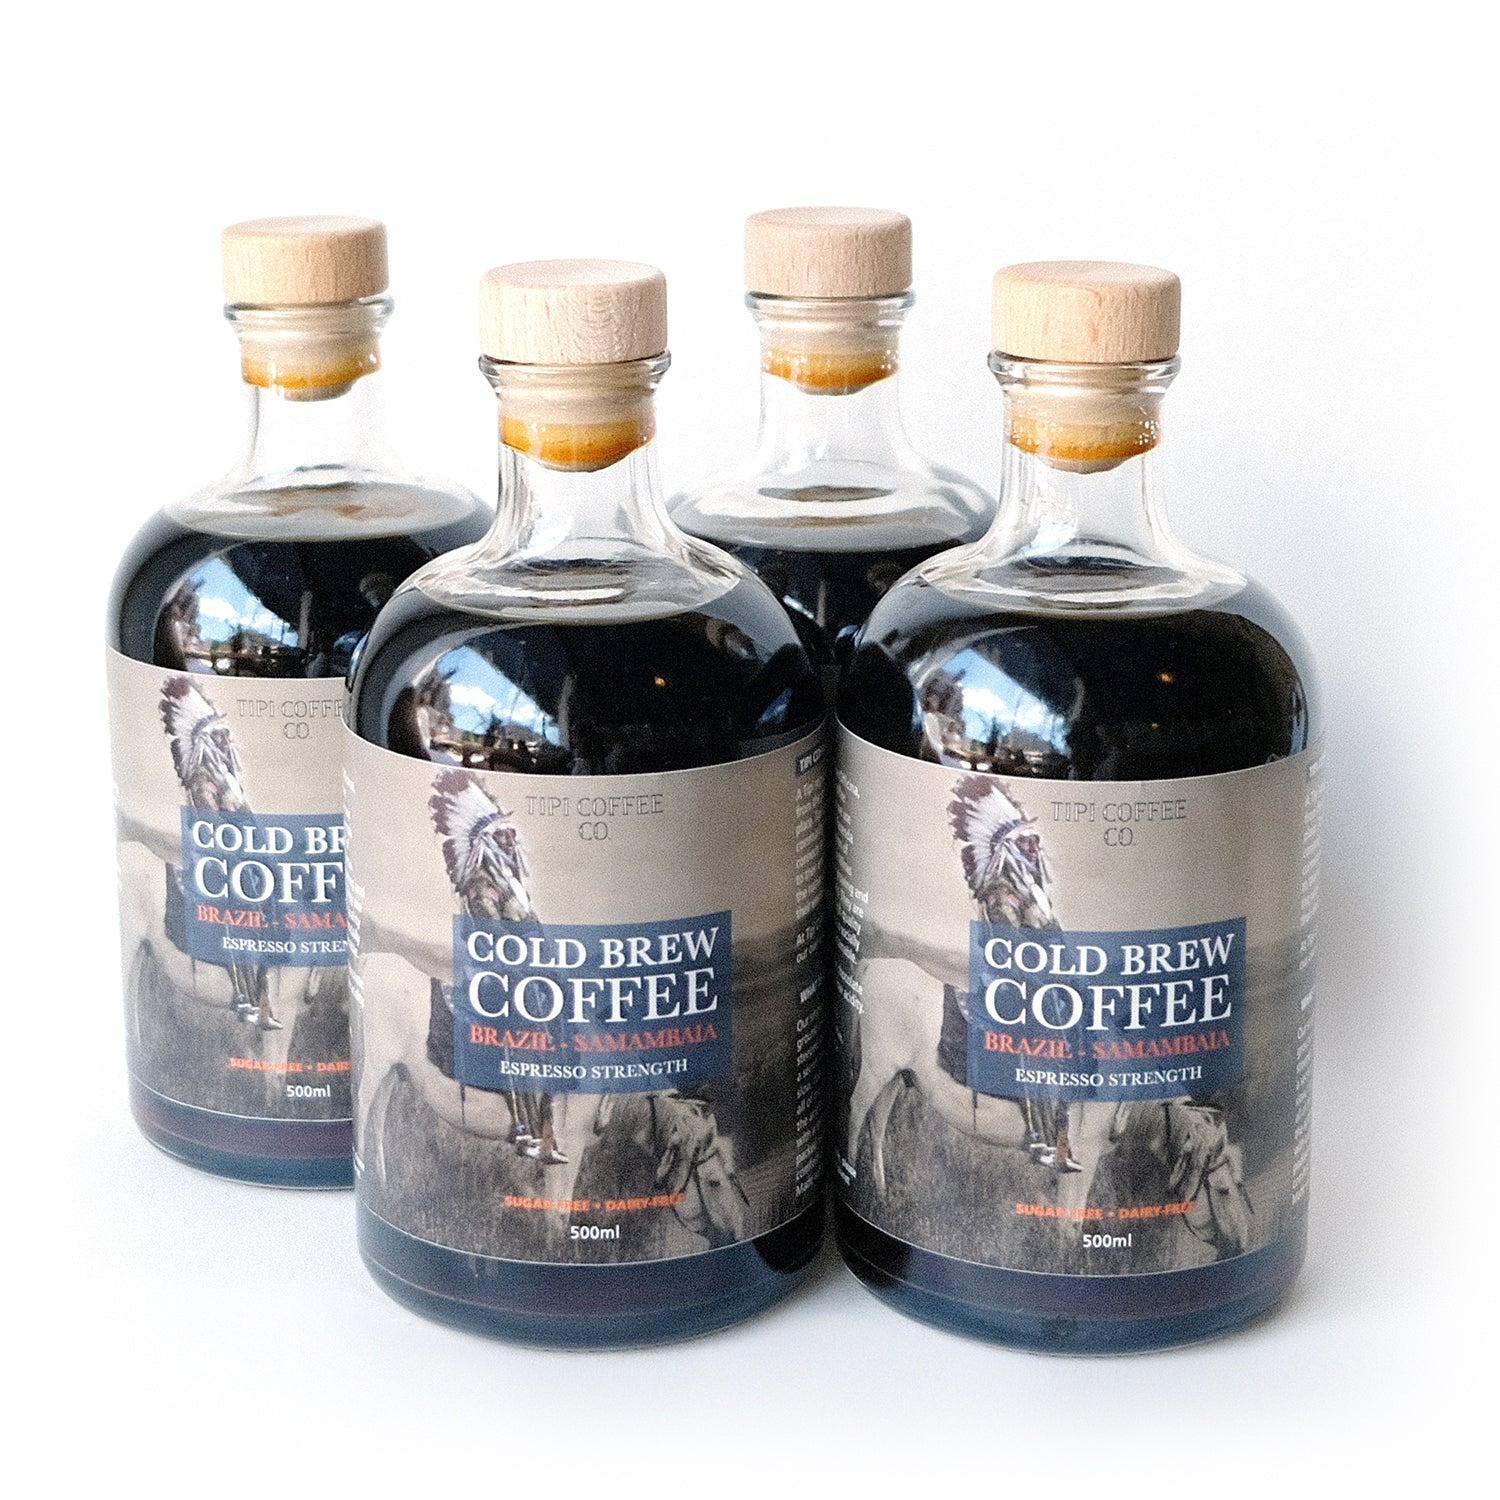 Tipi Coffee Co. Cold Brew Espresso Strength - 4 x 500mL Pack